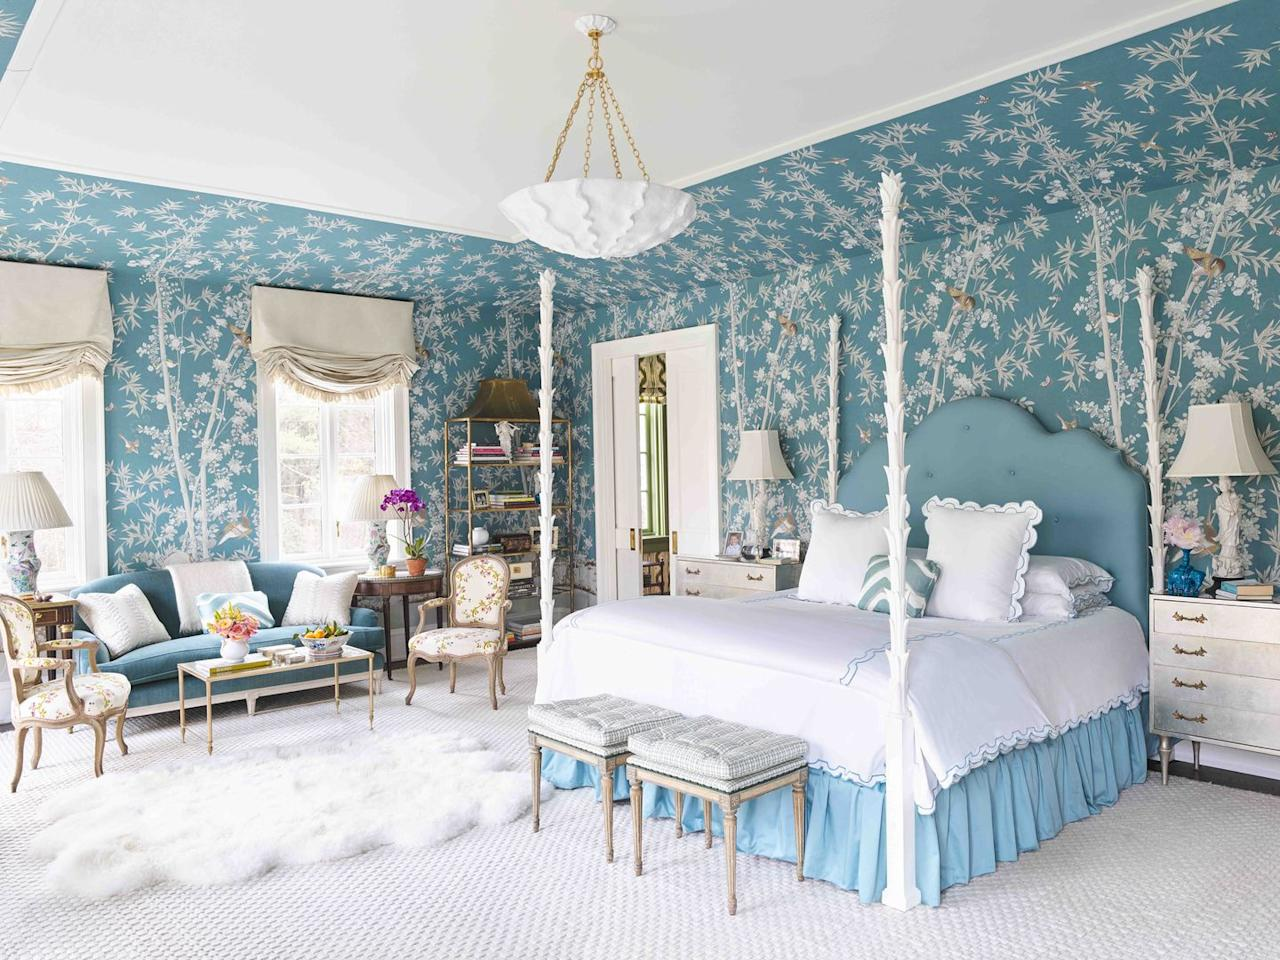 "<p>Color is always the topic of discussion in the <a href=""https://www.veranda.com/decorating-ideas/a27105023/meg-braff-long-island-home/"">master bedroom</a> of designer <a href=""http://www.megbraffdesigns.com/"">Meg Braff's </a>Long Island home. A peacock wallcovering by <a href=""https://fave.co/2y1ZhHa"" target=""_blank"">Schumacher</a> canopies the Serge Roche-inspired bed, set with bedding by <a href=""https://fave.co/2L358UI"" target=""_blank"">Satori Fine Linens</a>. The Roman shade fabric is by <a href=""https://fave.co/2f4jkMV"" target=""_blank"">Holland & Sherry</a>, and the pendant lighting is <a href=""https://fave.co/2IISIPU"" target=""_blank"">Aerin</a> for <a href=""https://fave.co/2PvDwGp"" target=""_blank"">Visual Comfort & Co.</a></p>"